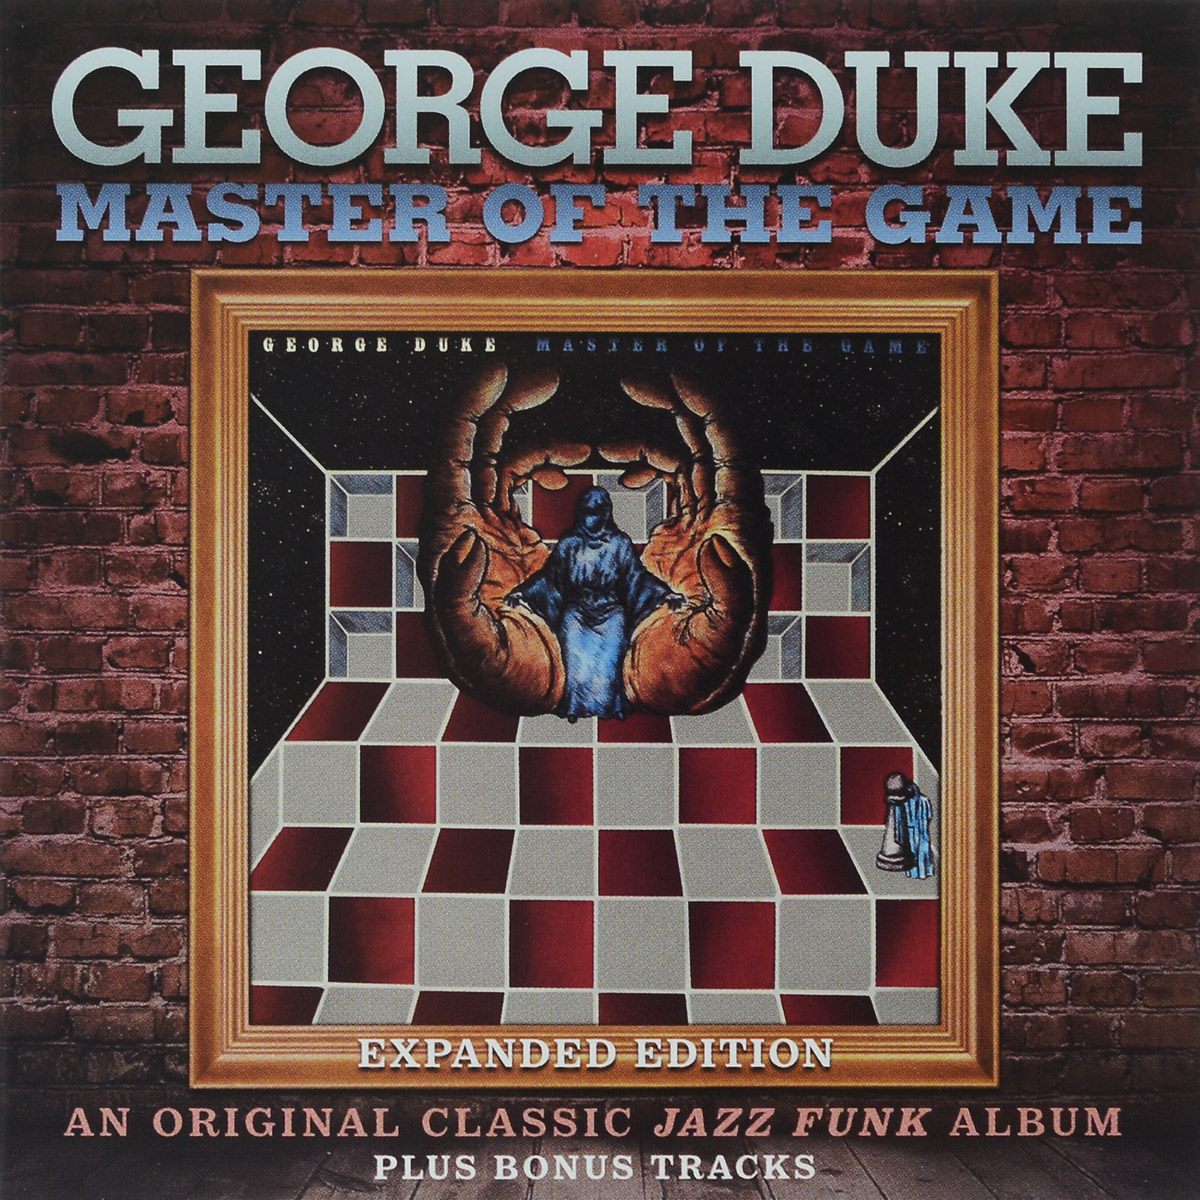 Джордж Дюк SoulMusic.com Classics. George Duke. Master Of The Game. Expanded Edition fallout 4 game of the year edition [pc цифровая версия] цифровая версия